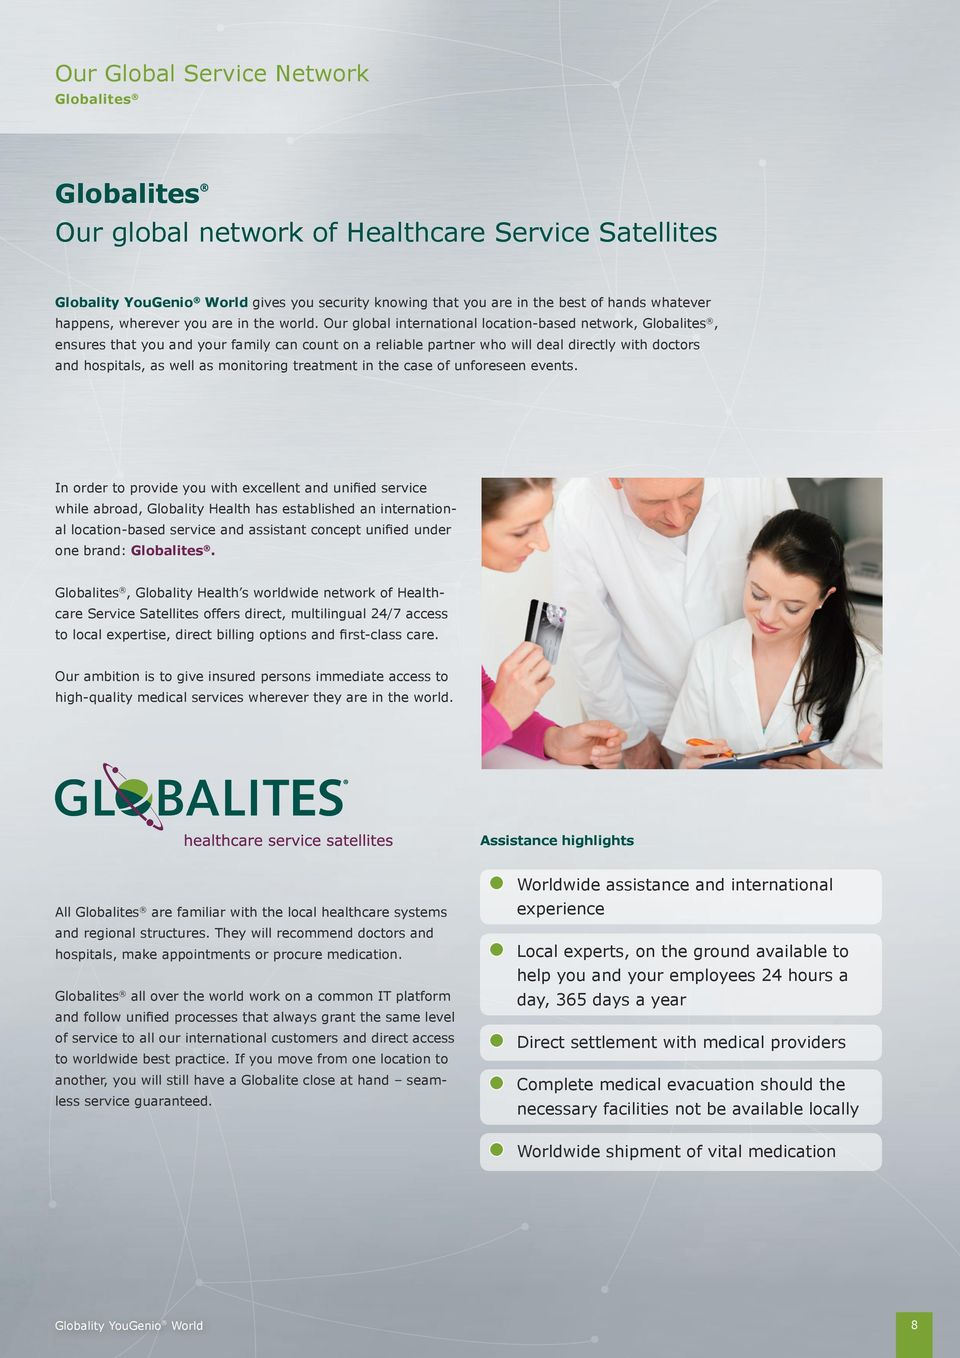 Our global international location-based network, Globalites, ensures that you and your family can count on a reliable partner who will deal directly with doctors and hospitals, as well as monitoring